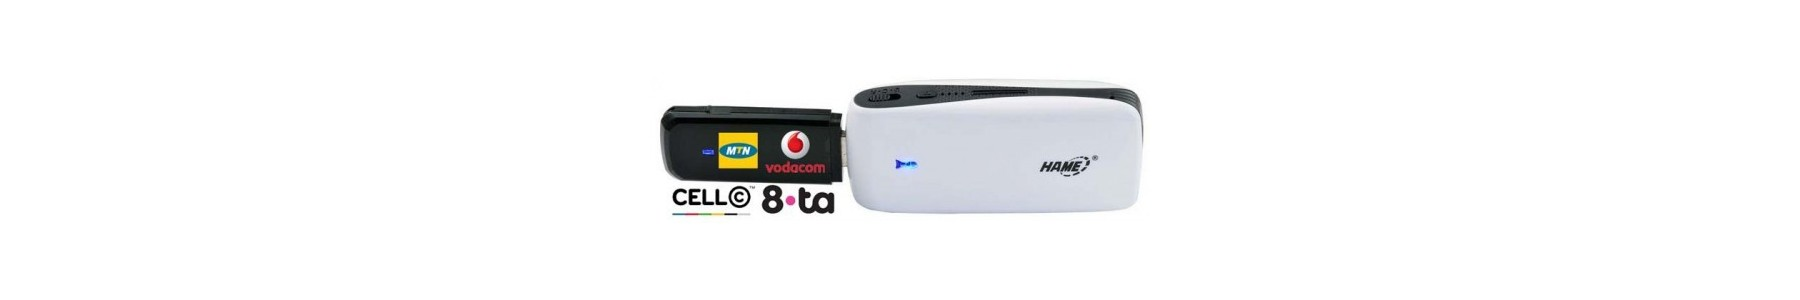 Buy a 3G Wireless Router | Best Prices and Countrywide Delivery